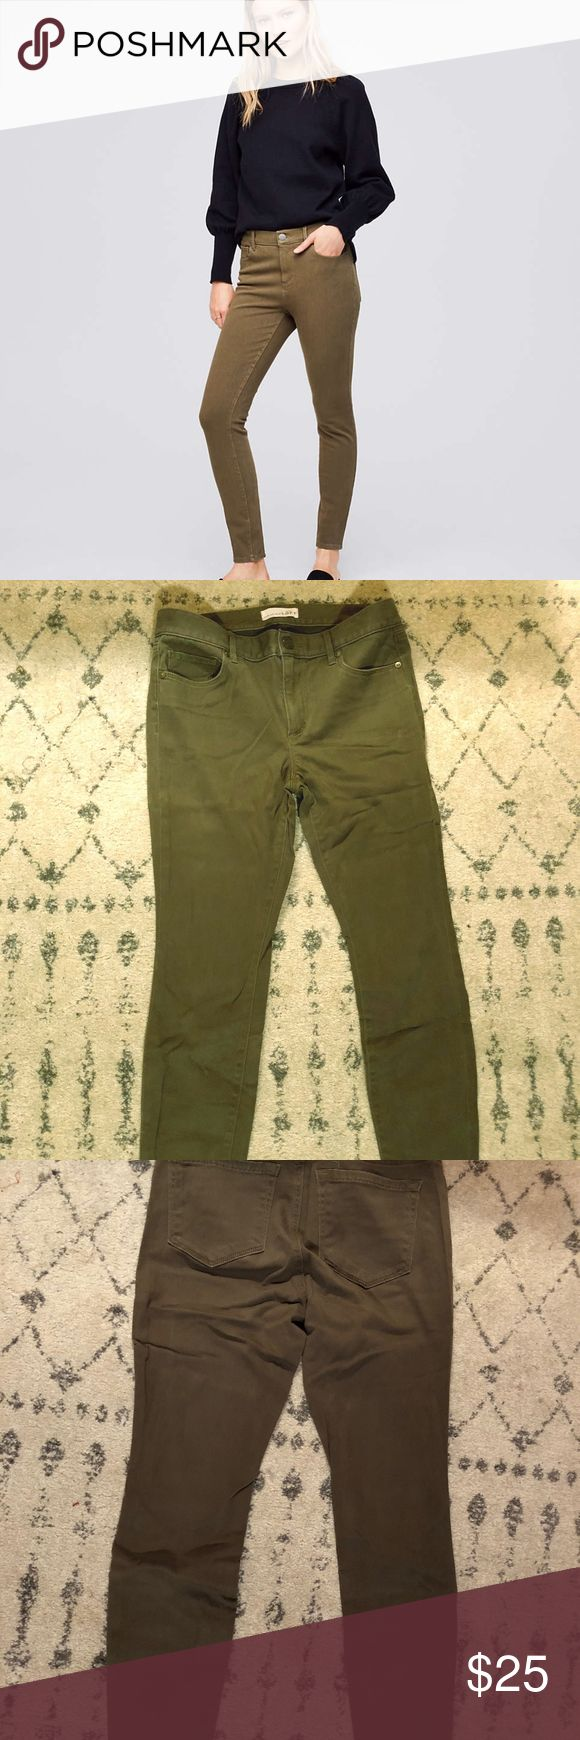 LOFT 4 Way Stretch Denim Leggings Brand: LOFT Color: Olive Drab Style: Jeggings, Denim Leggings, Front & Back Pockets, Ankle-Length Material: 57% Cotton, 40% Rayon, 3% Spandex Condition: Worn Less Than 5 Times LOFT Pants Leggings